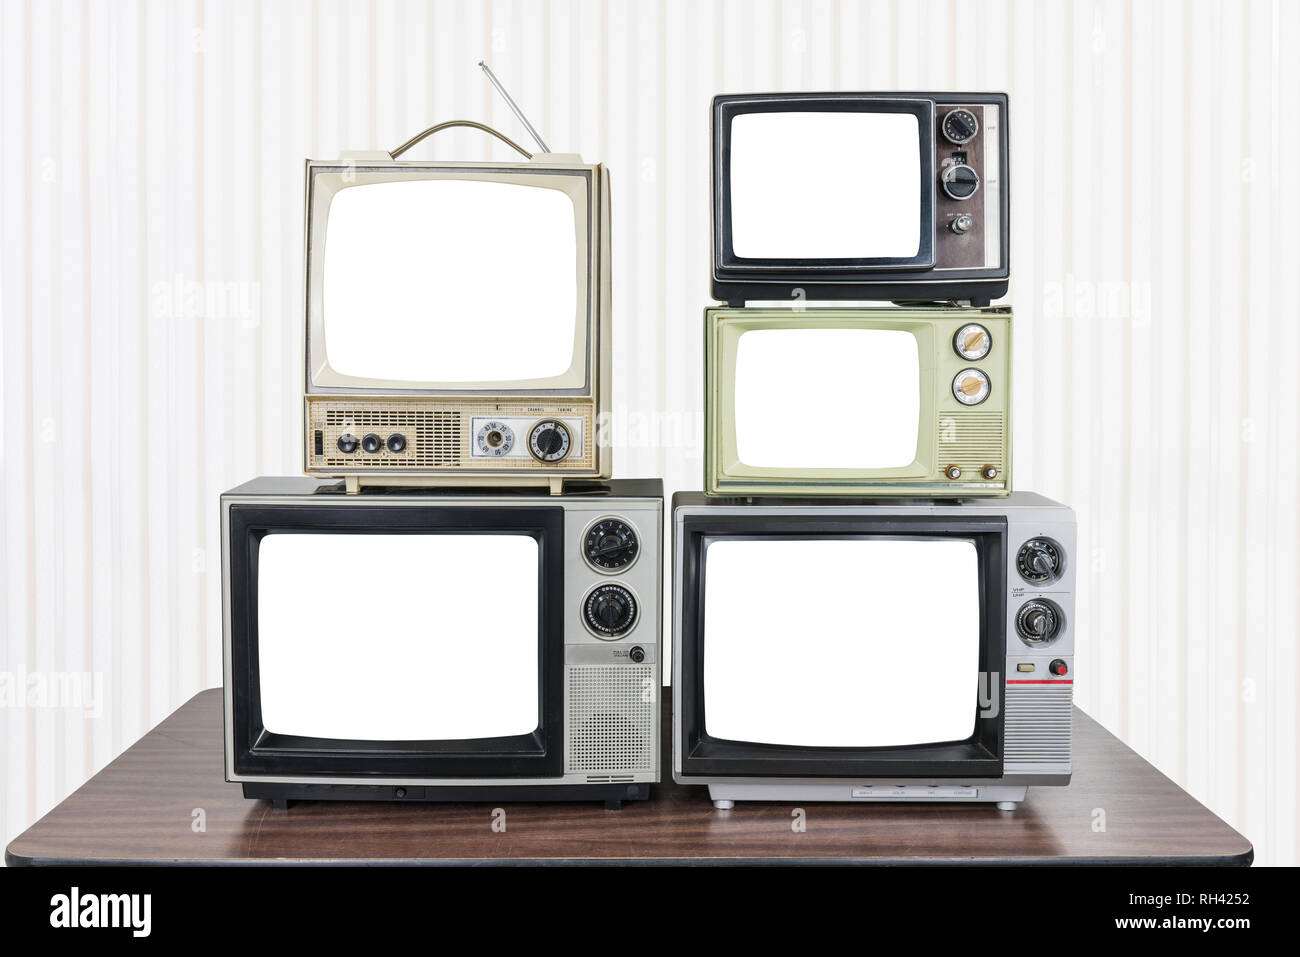 https www alamy com five vintage televisions on old wood table with cut out screens image234273454 html